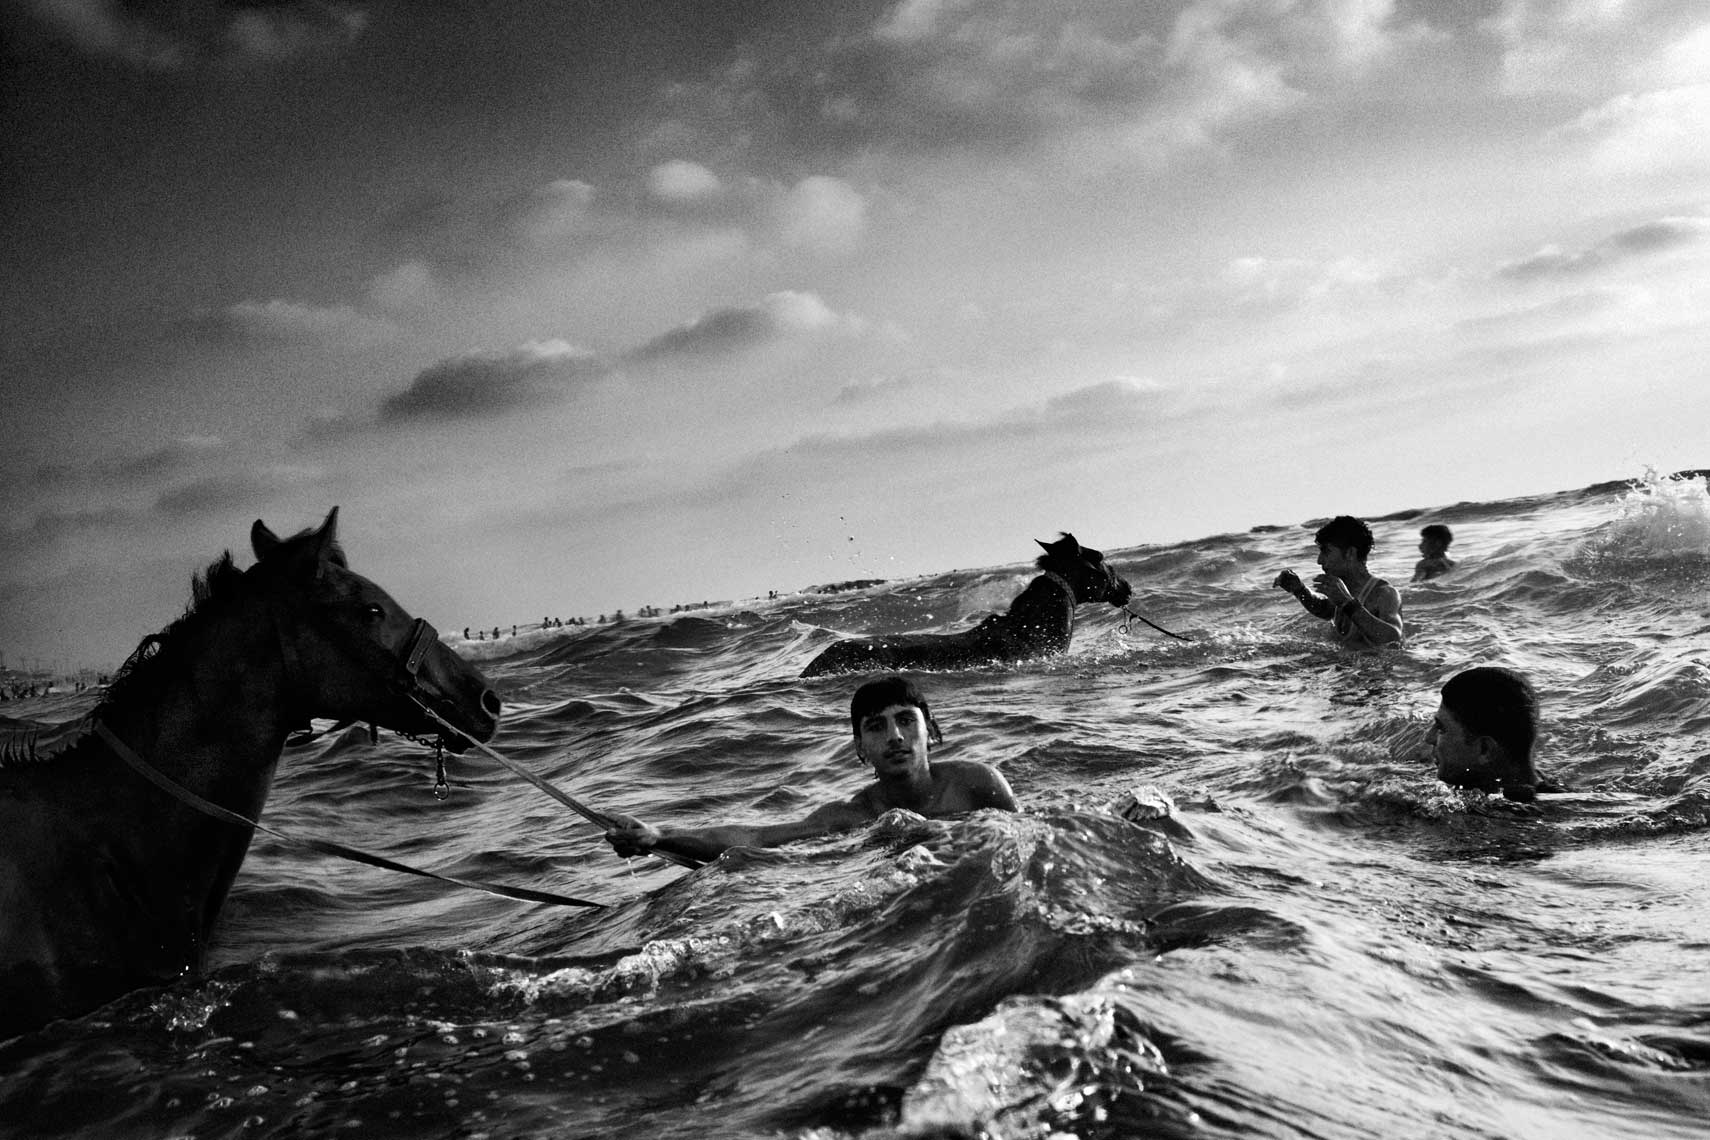 Gaza Horses and Sea